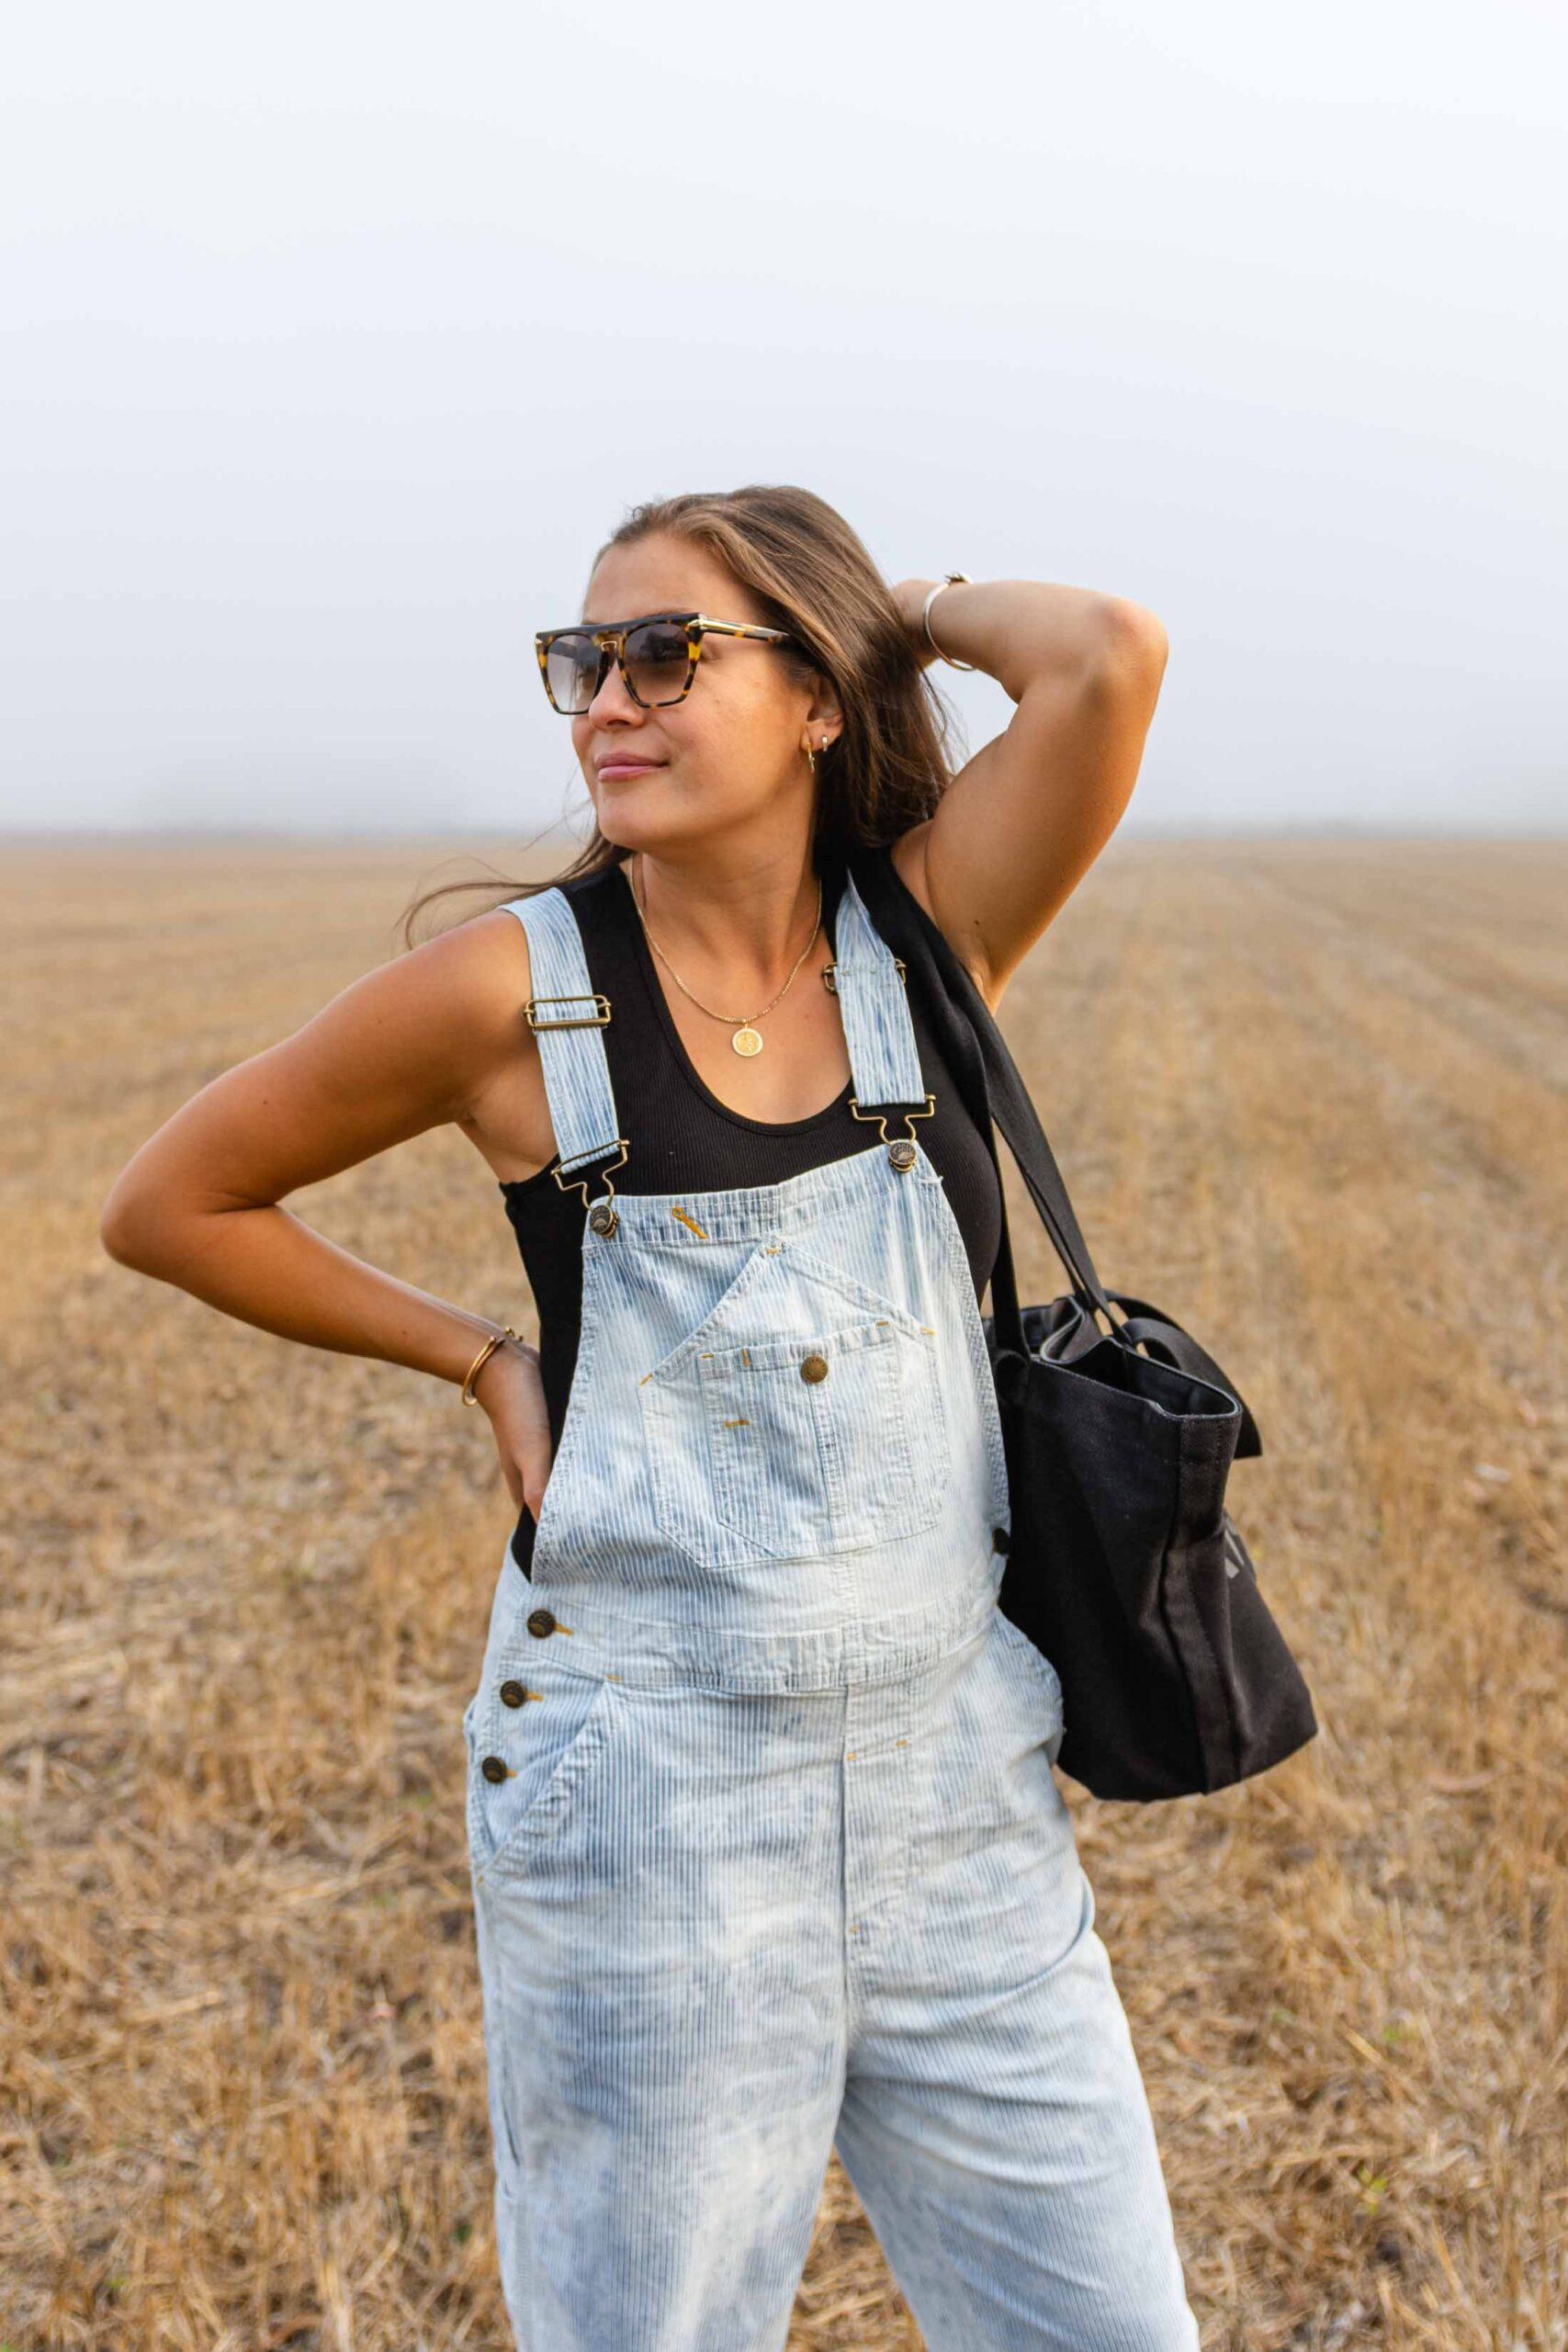 """I've found the Golden Ticket to 2nd trimester fashion & it has nothing to do with """"maternity"""" wear. Overalls. This """"still fits into standard clothes"""" phase is short-lived & I'm milking it (heh) for all it's worth."""